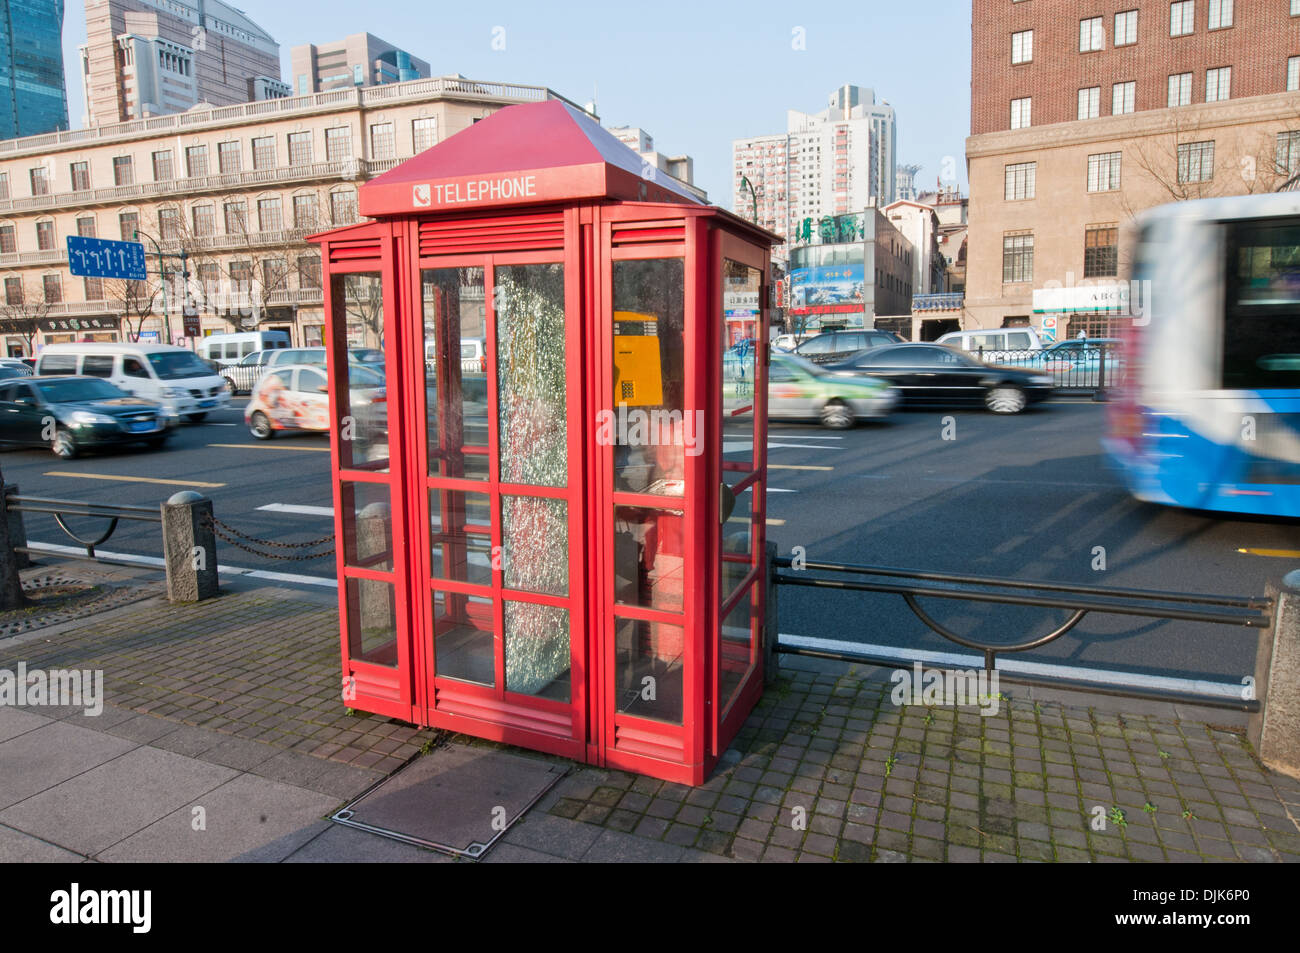 telephone booth at Middle Xizang Road in Huangpu District, Shanghai, China Stock Photo